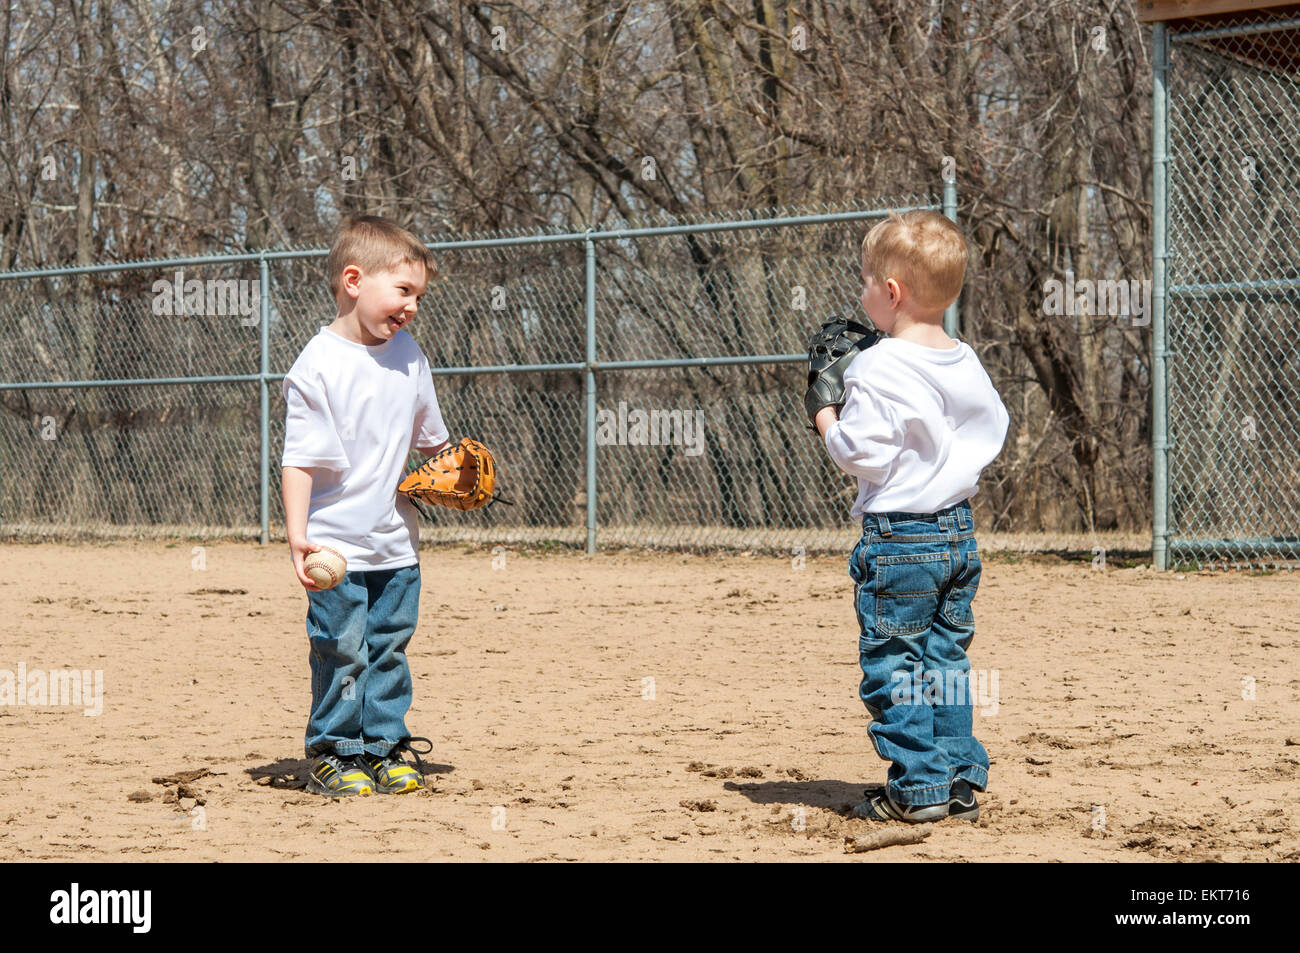 Two boys playing baseball catch and talking - Stock Image